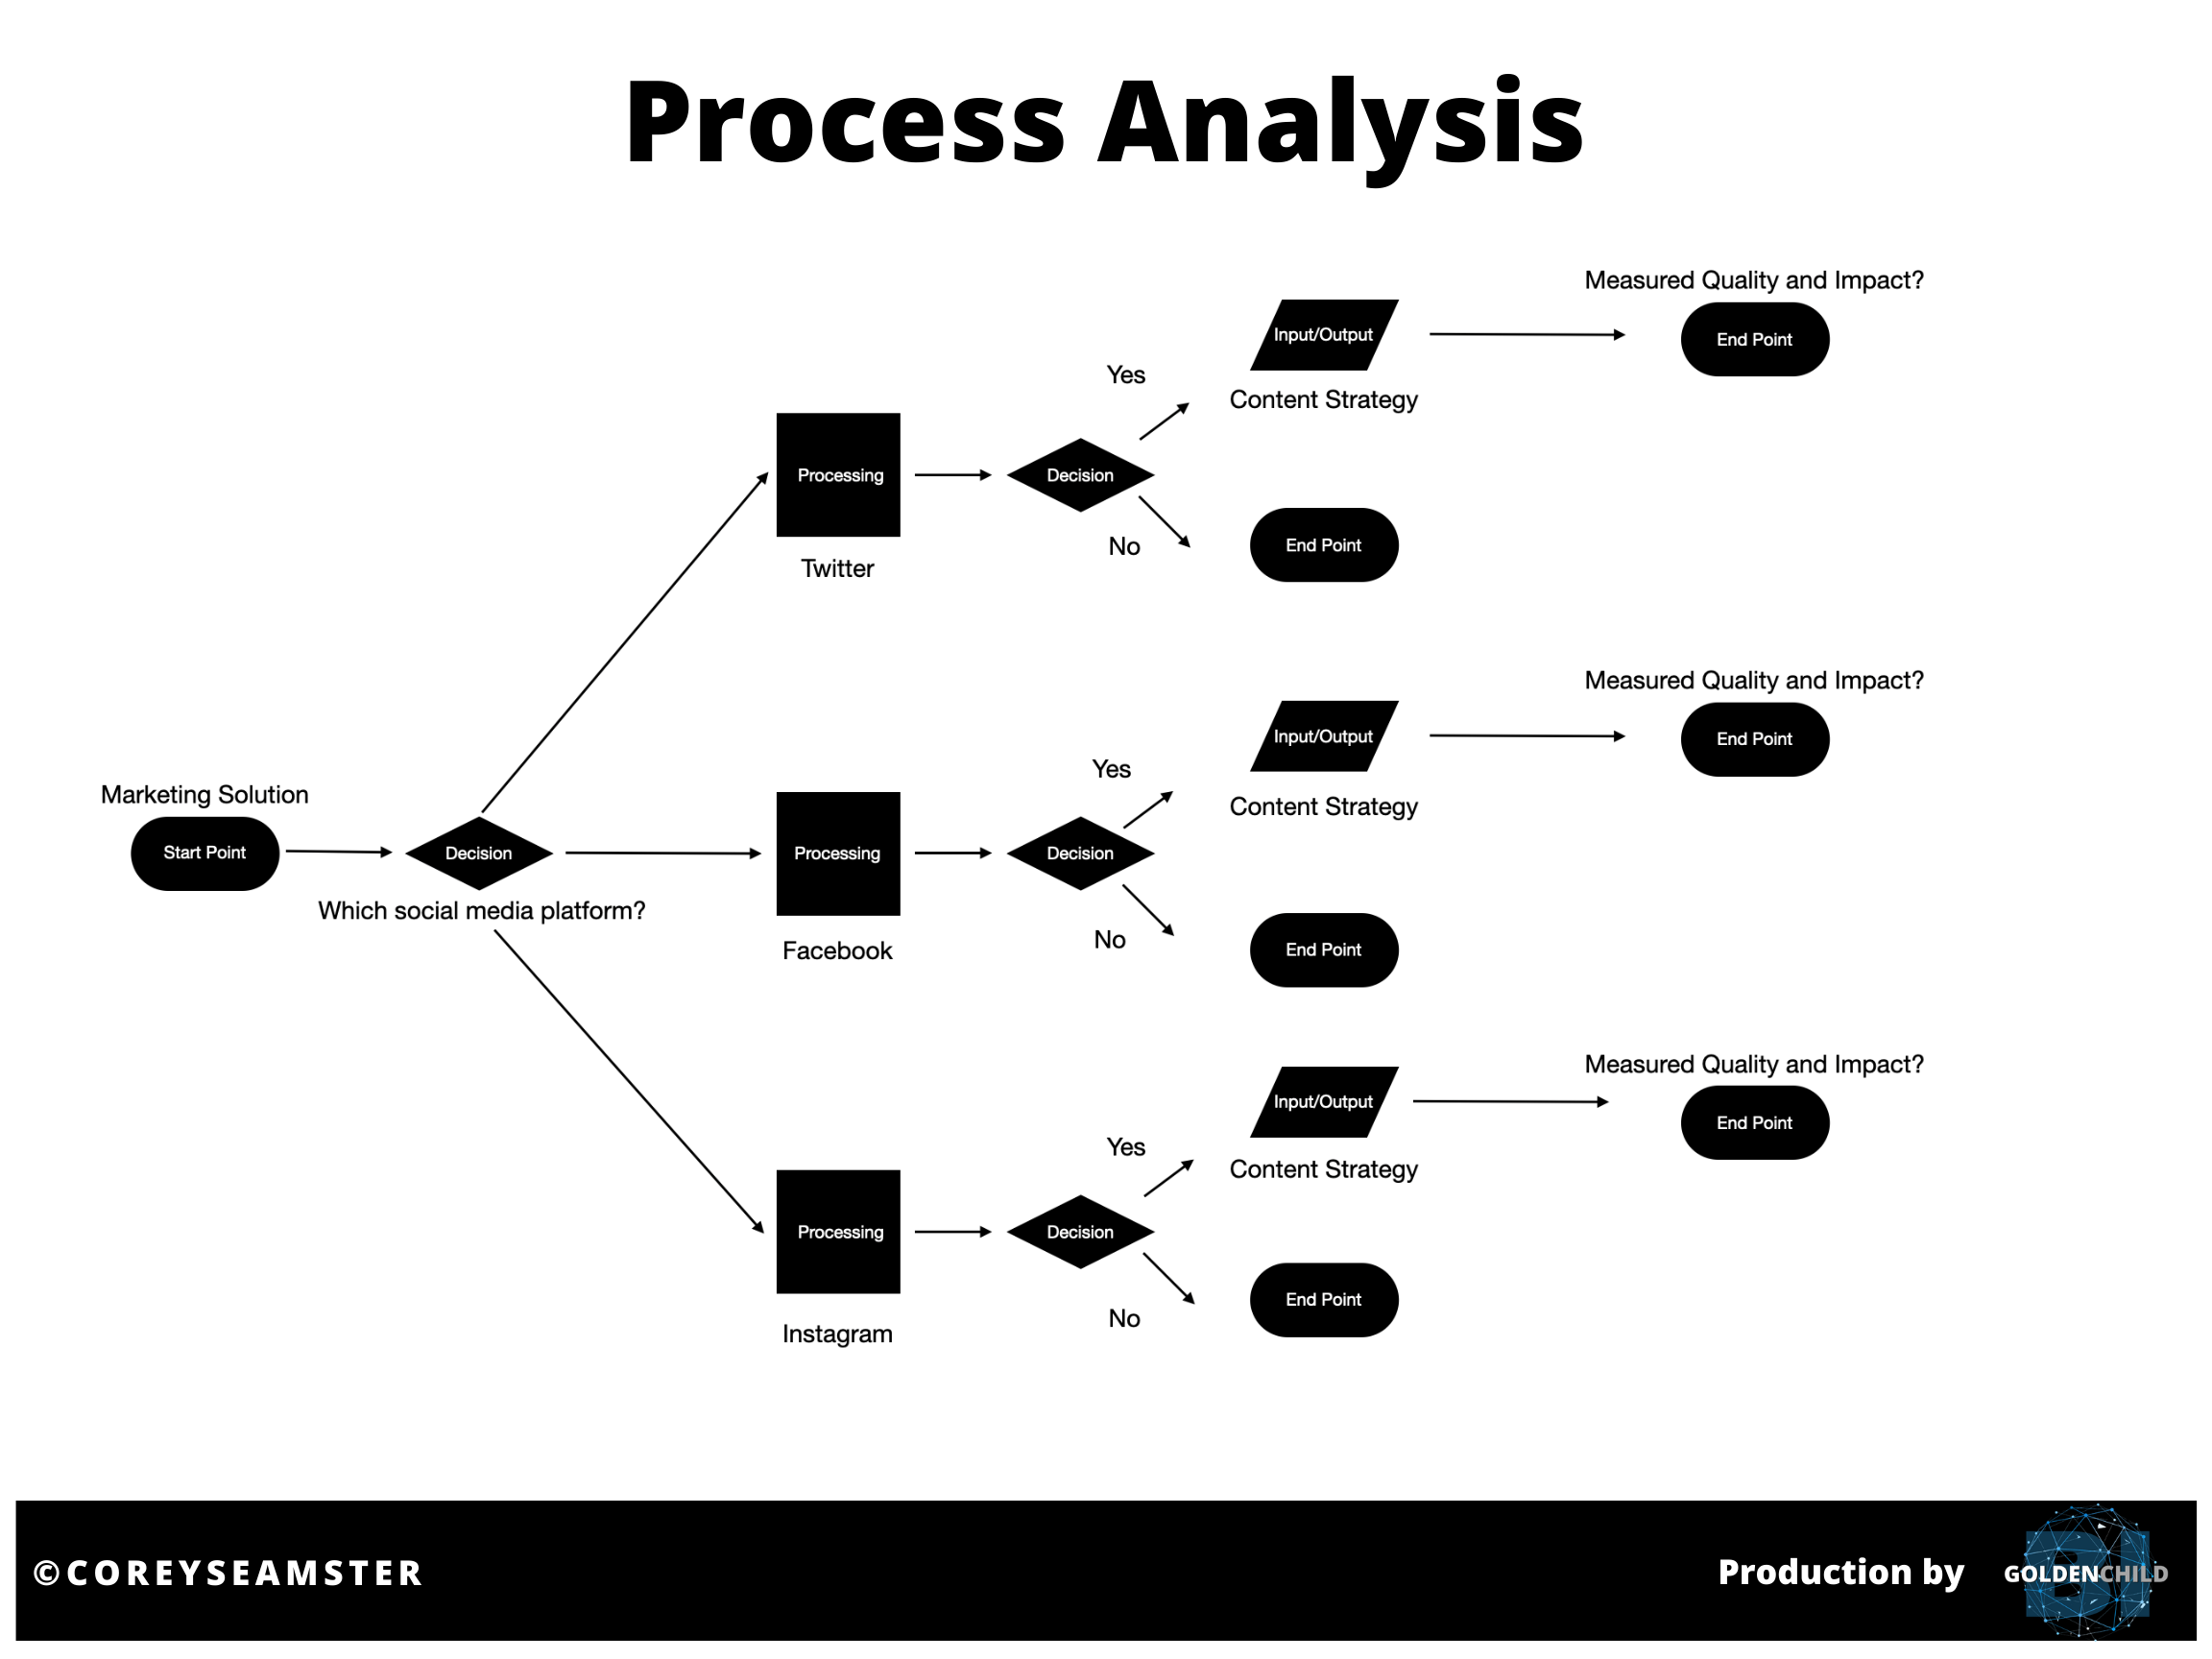 Source: Corey Seasmster (2020) | Image: 3DR Process Flow Diagram (Hypothetical Scenario)